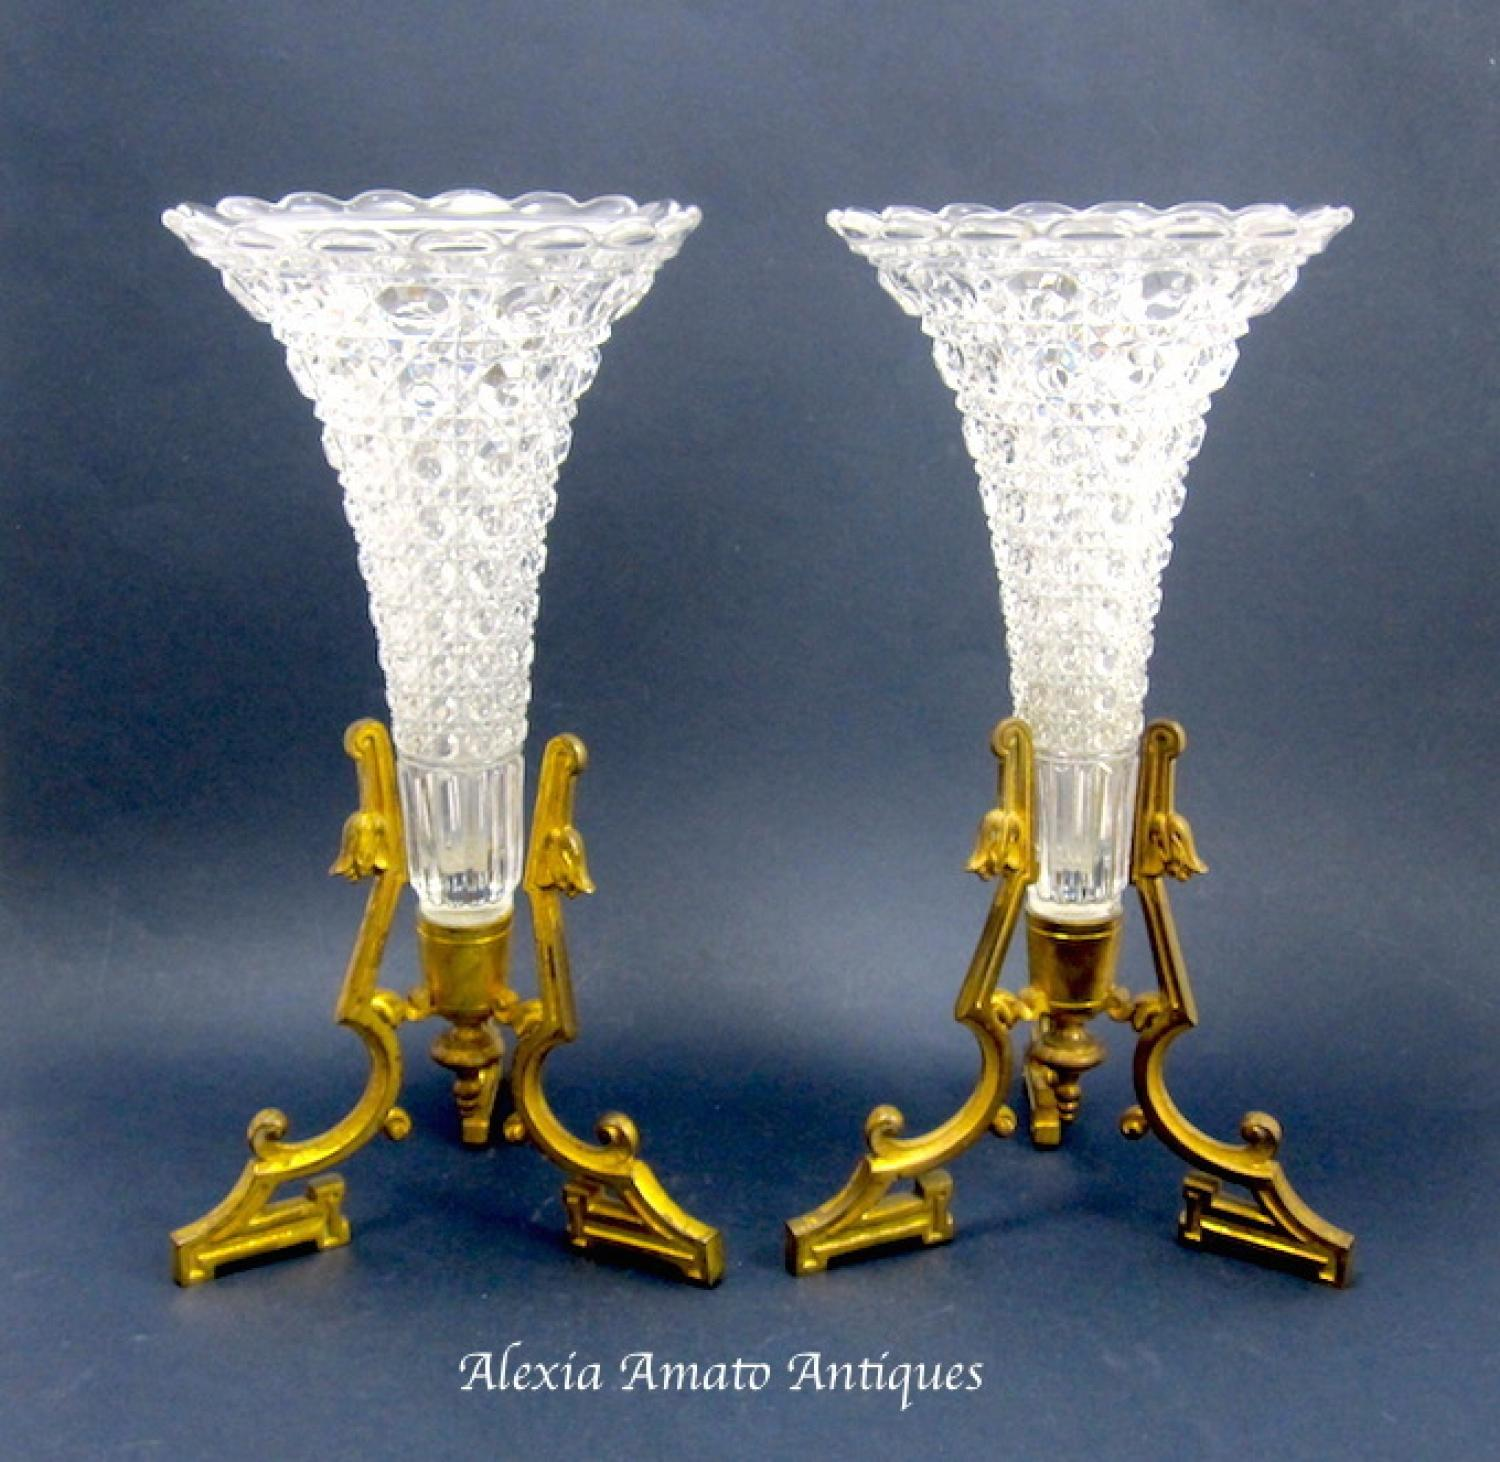 A Pair of Antique Baccarat French Cut Crystal